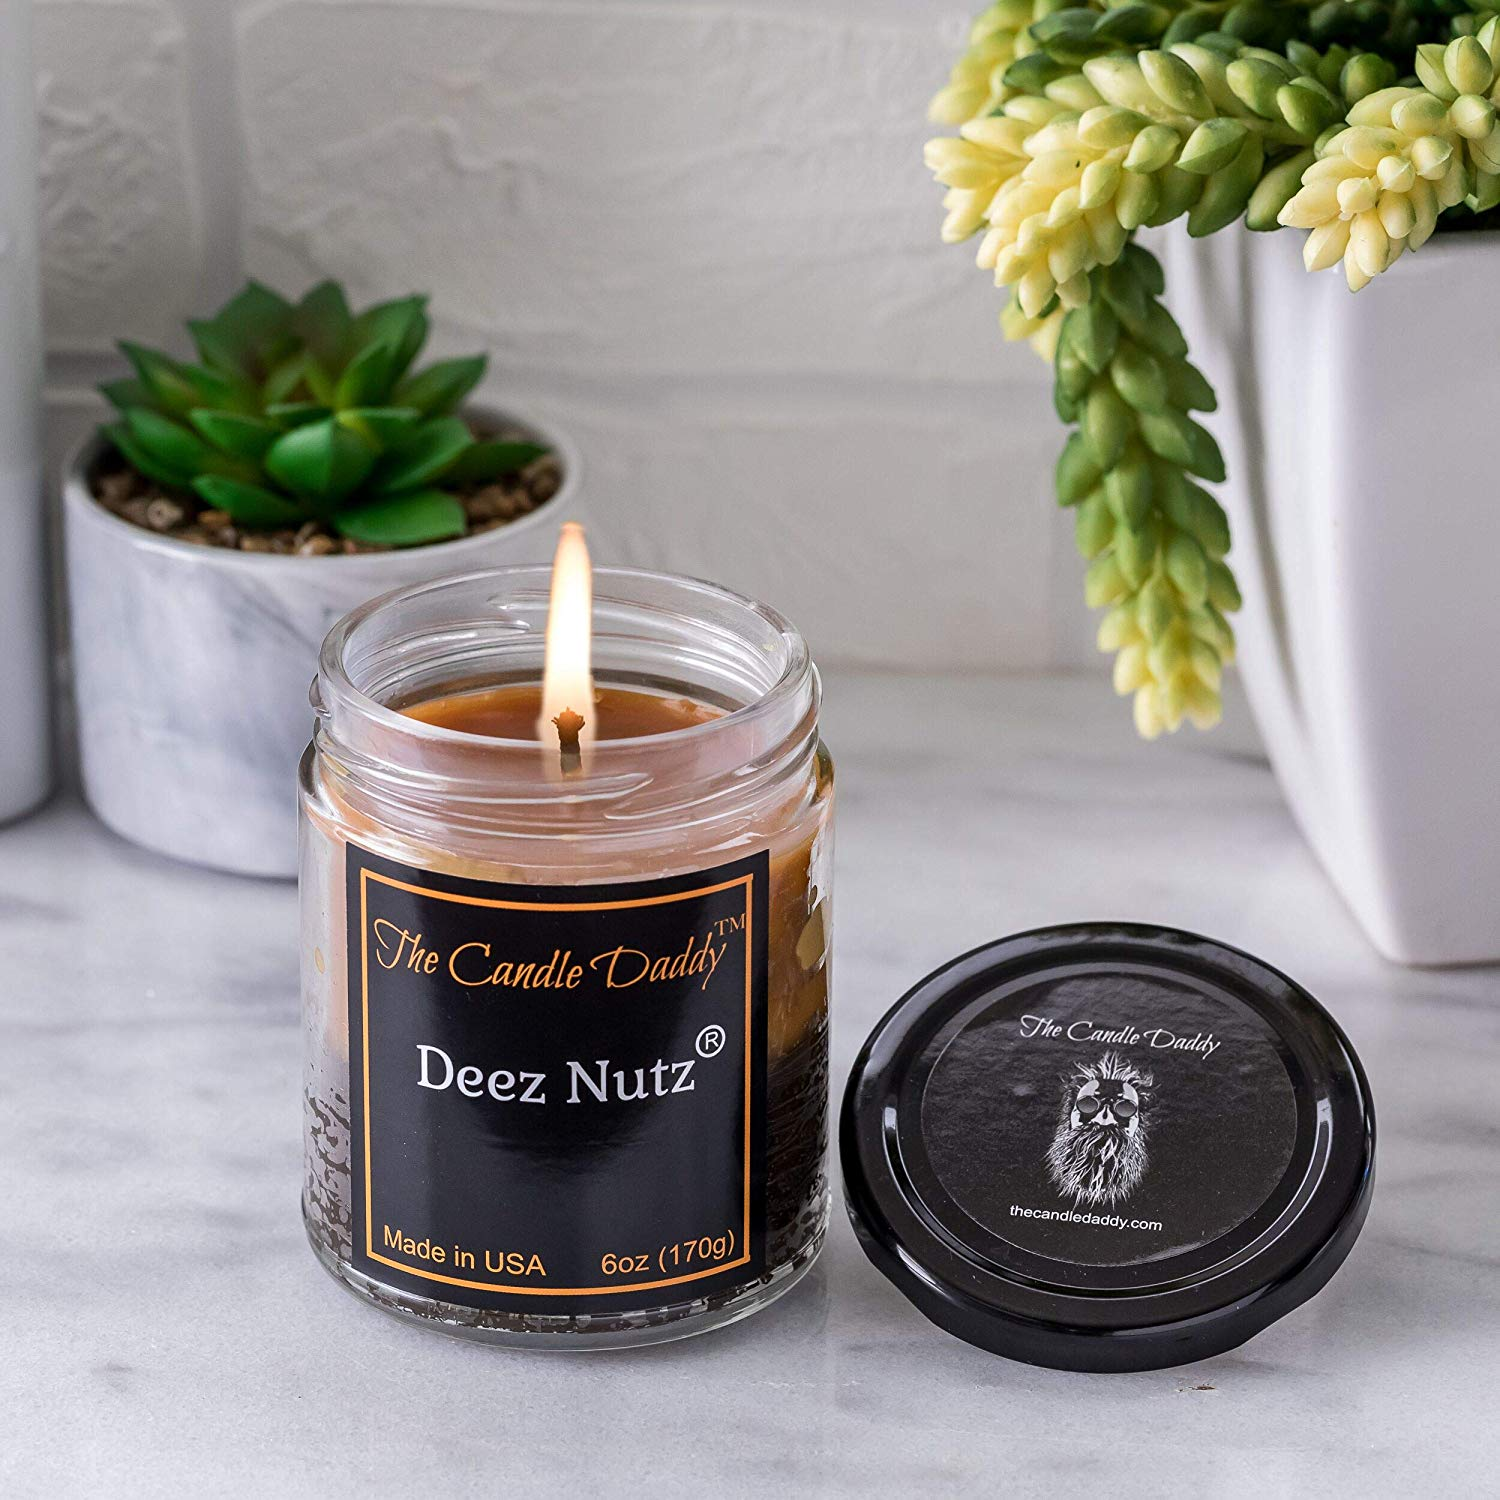 You Can Buy A 'Deez Nutz' Scented Candle That Has A Surprisingly Pleasant Aroma